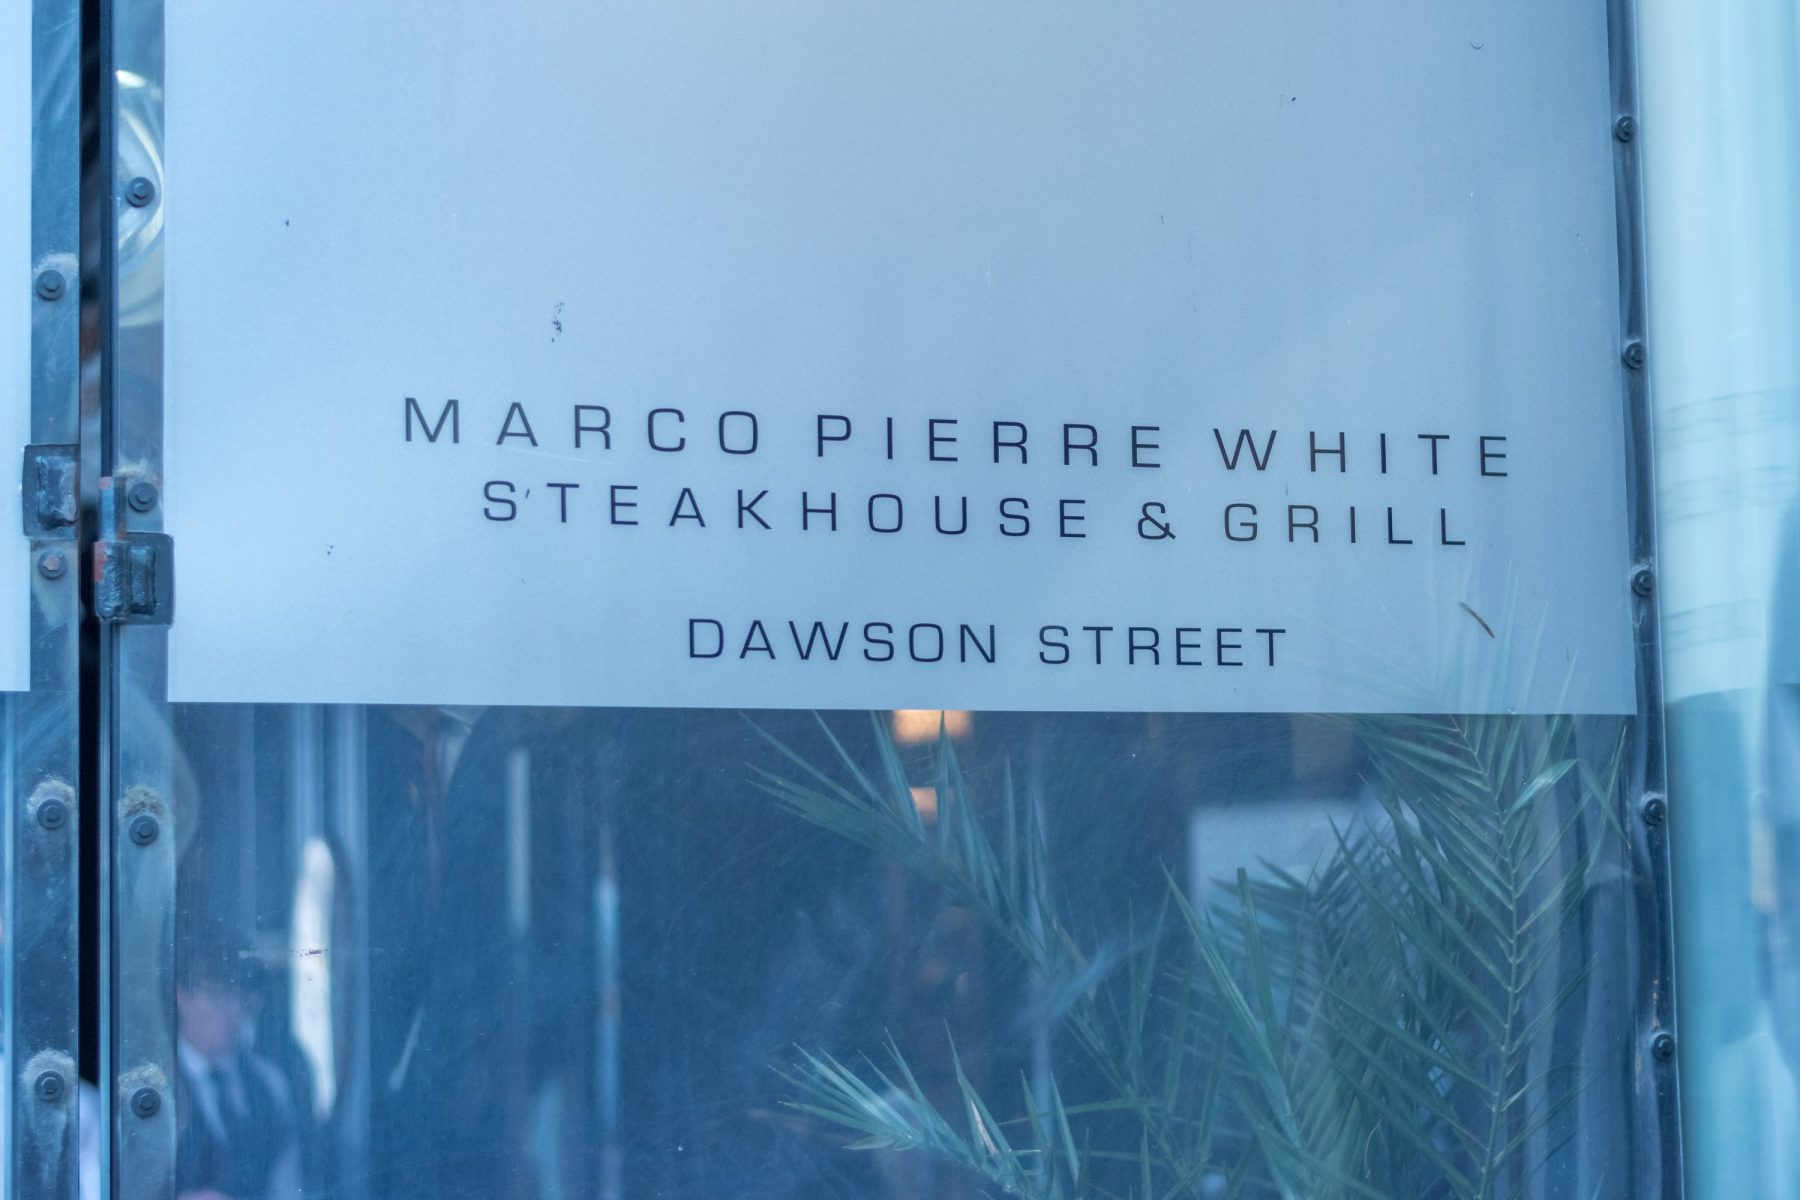 Marco Pierre White Steakhouse & Grill | Get in my Belly 4